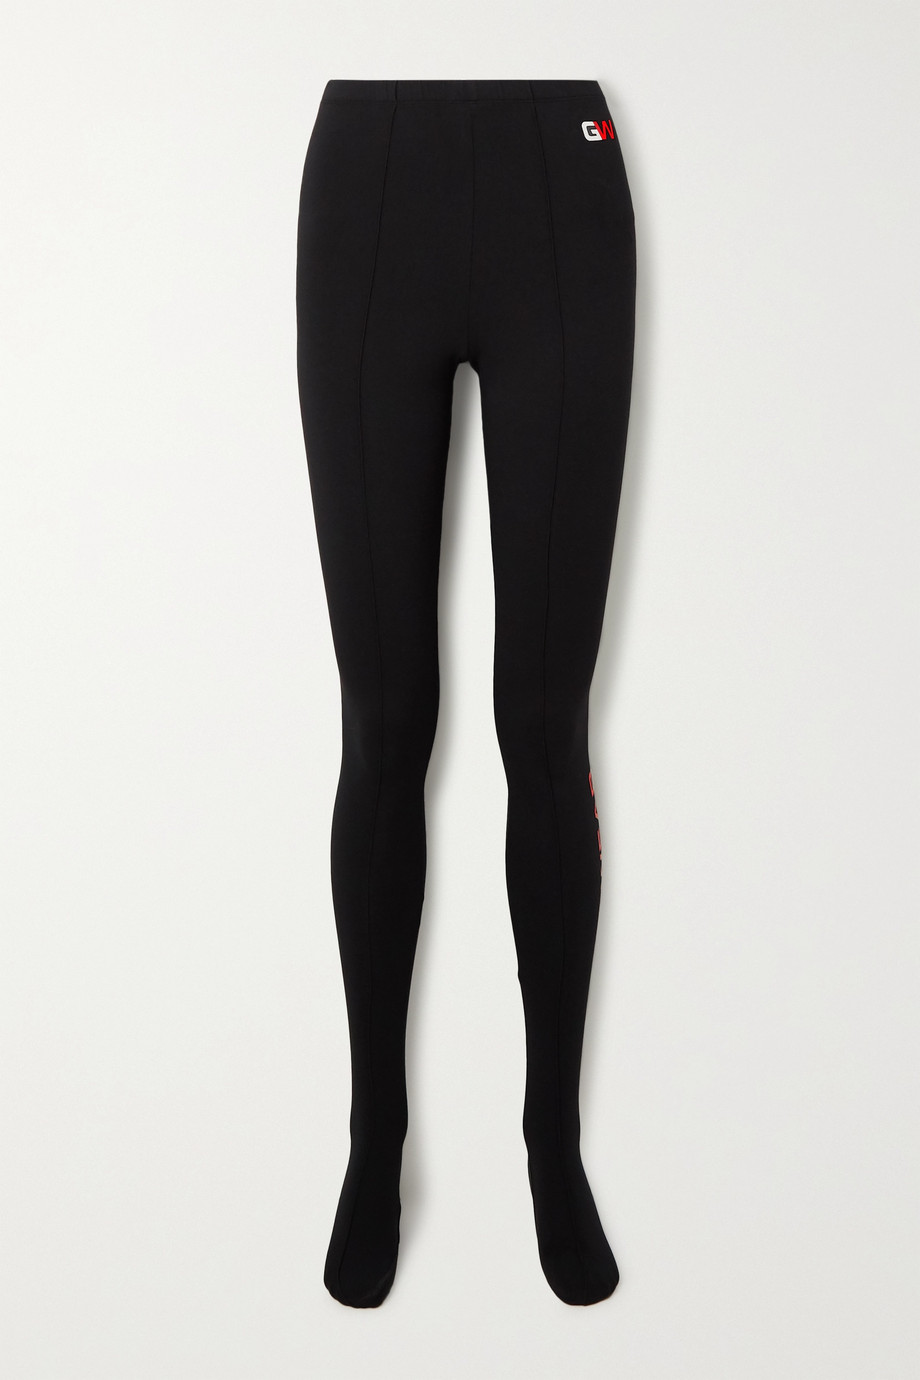 Balenciaga Printed stretch cotton-jersey leggings